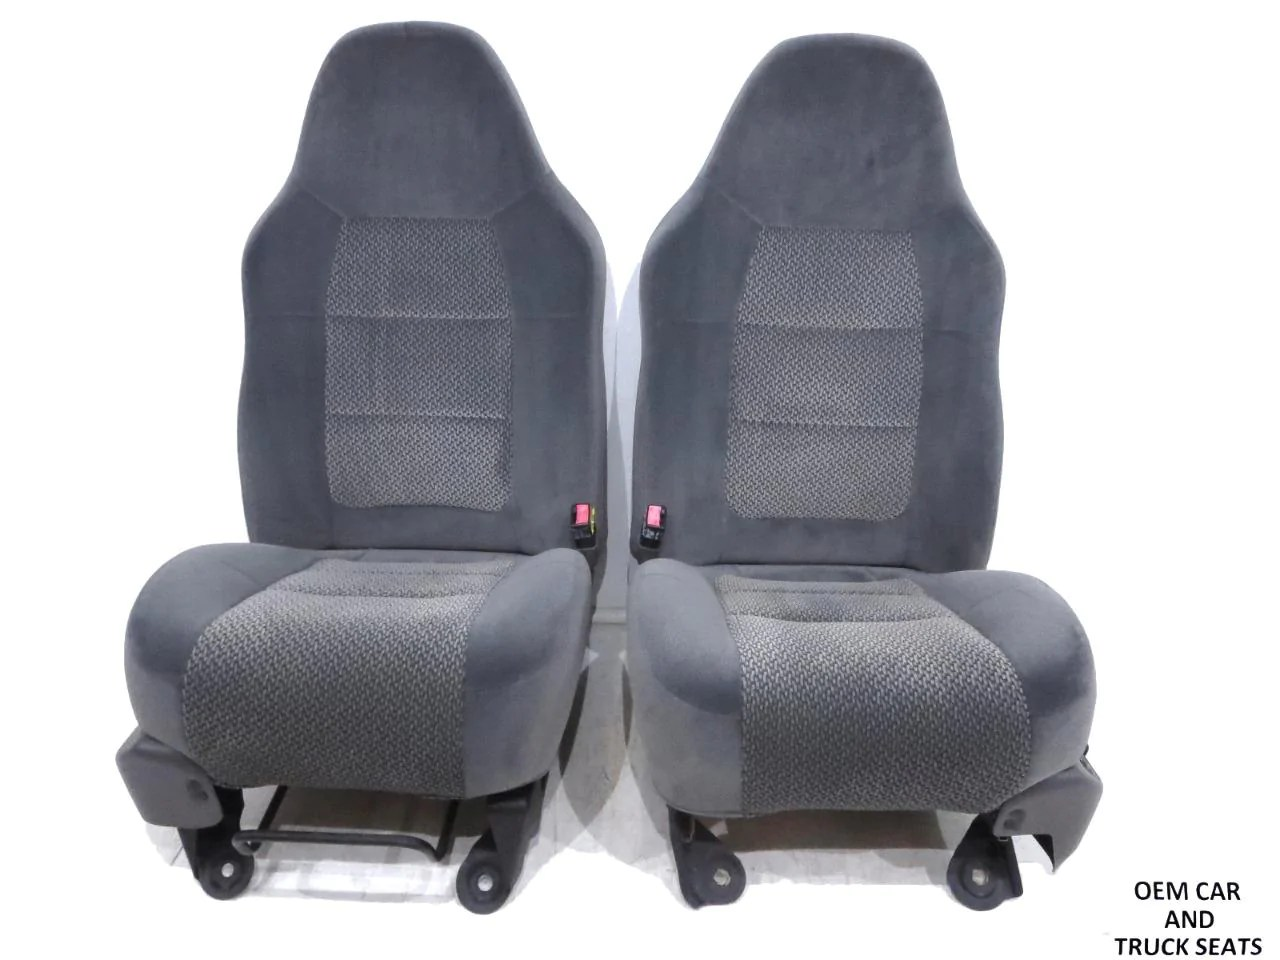 ford f 150 expedition f150 oem bucket seats 1998 1999 2000 2001 2002 2003 [ 1280 x 960 Pixel ]